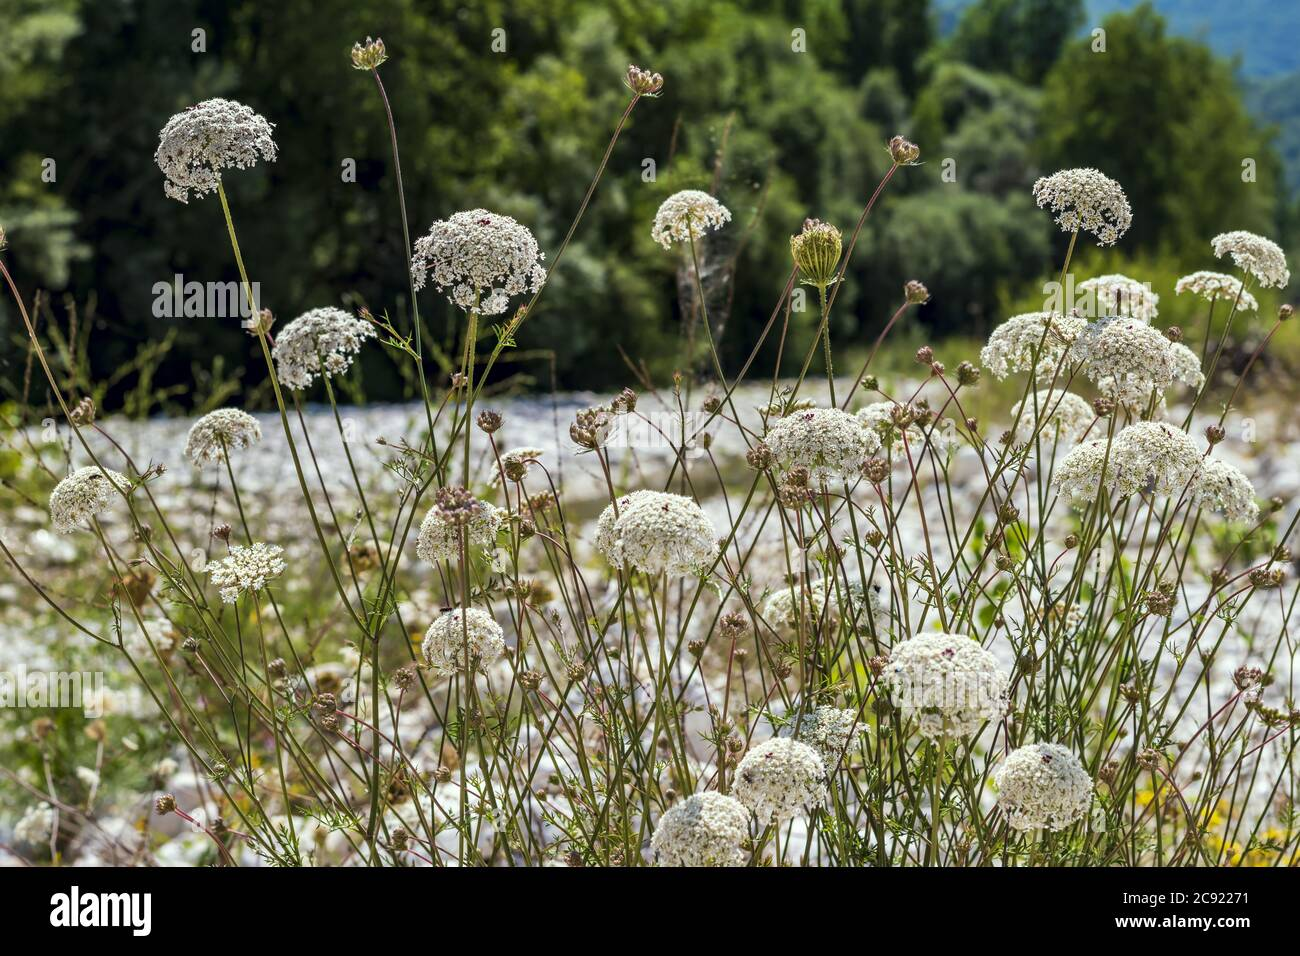 Ammi majus flowering plant on the riverbank,commonly known as bishop's weed or laceflower a member of the carrot family Apiaceae Stock Photo